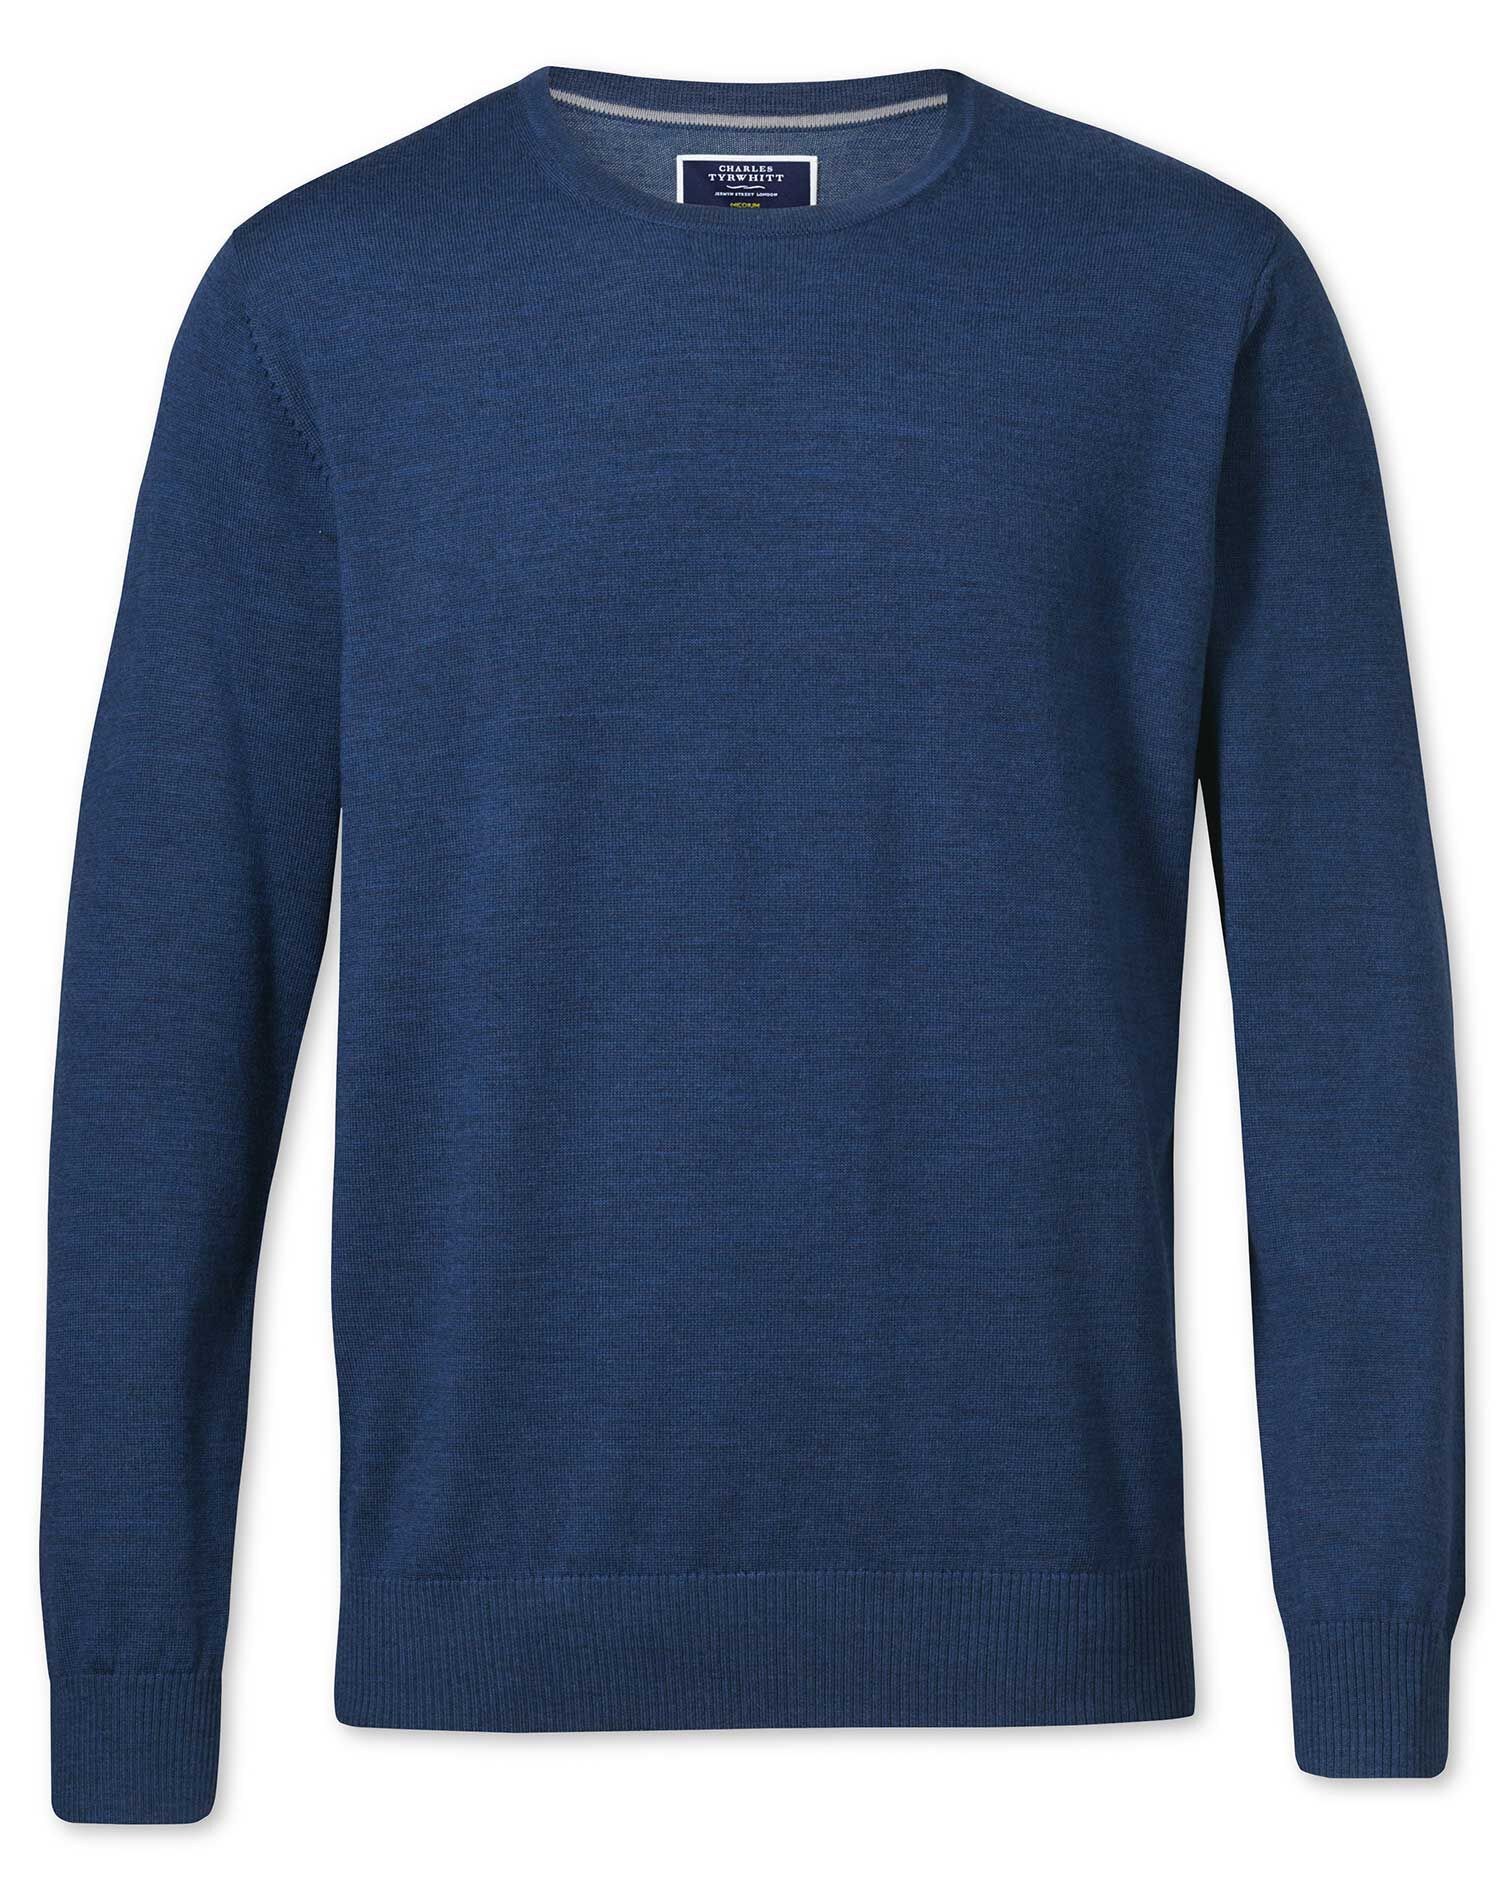 Mid Blue Merino Wool Crew Neck Jumper Size Large by Charles Tyrwhitt